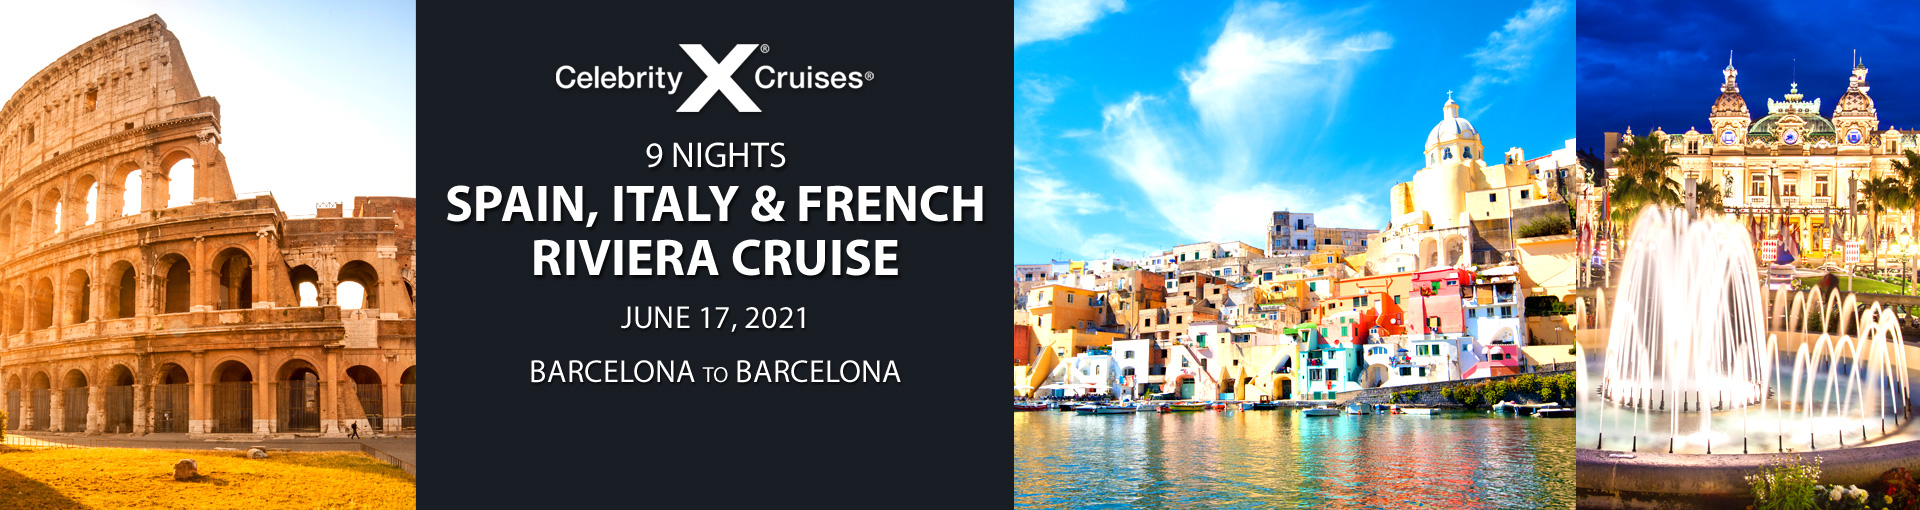 Celebrity Cruises: Exclusive offer for Spain, Italy and French Riviera cruise departing June 17, 2021